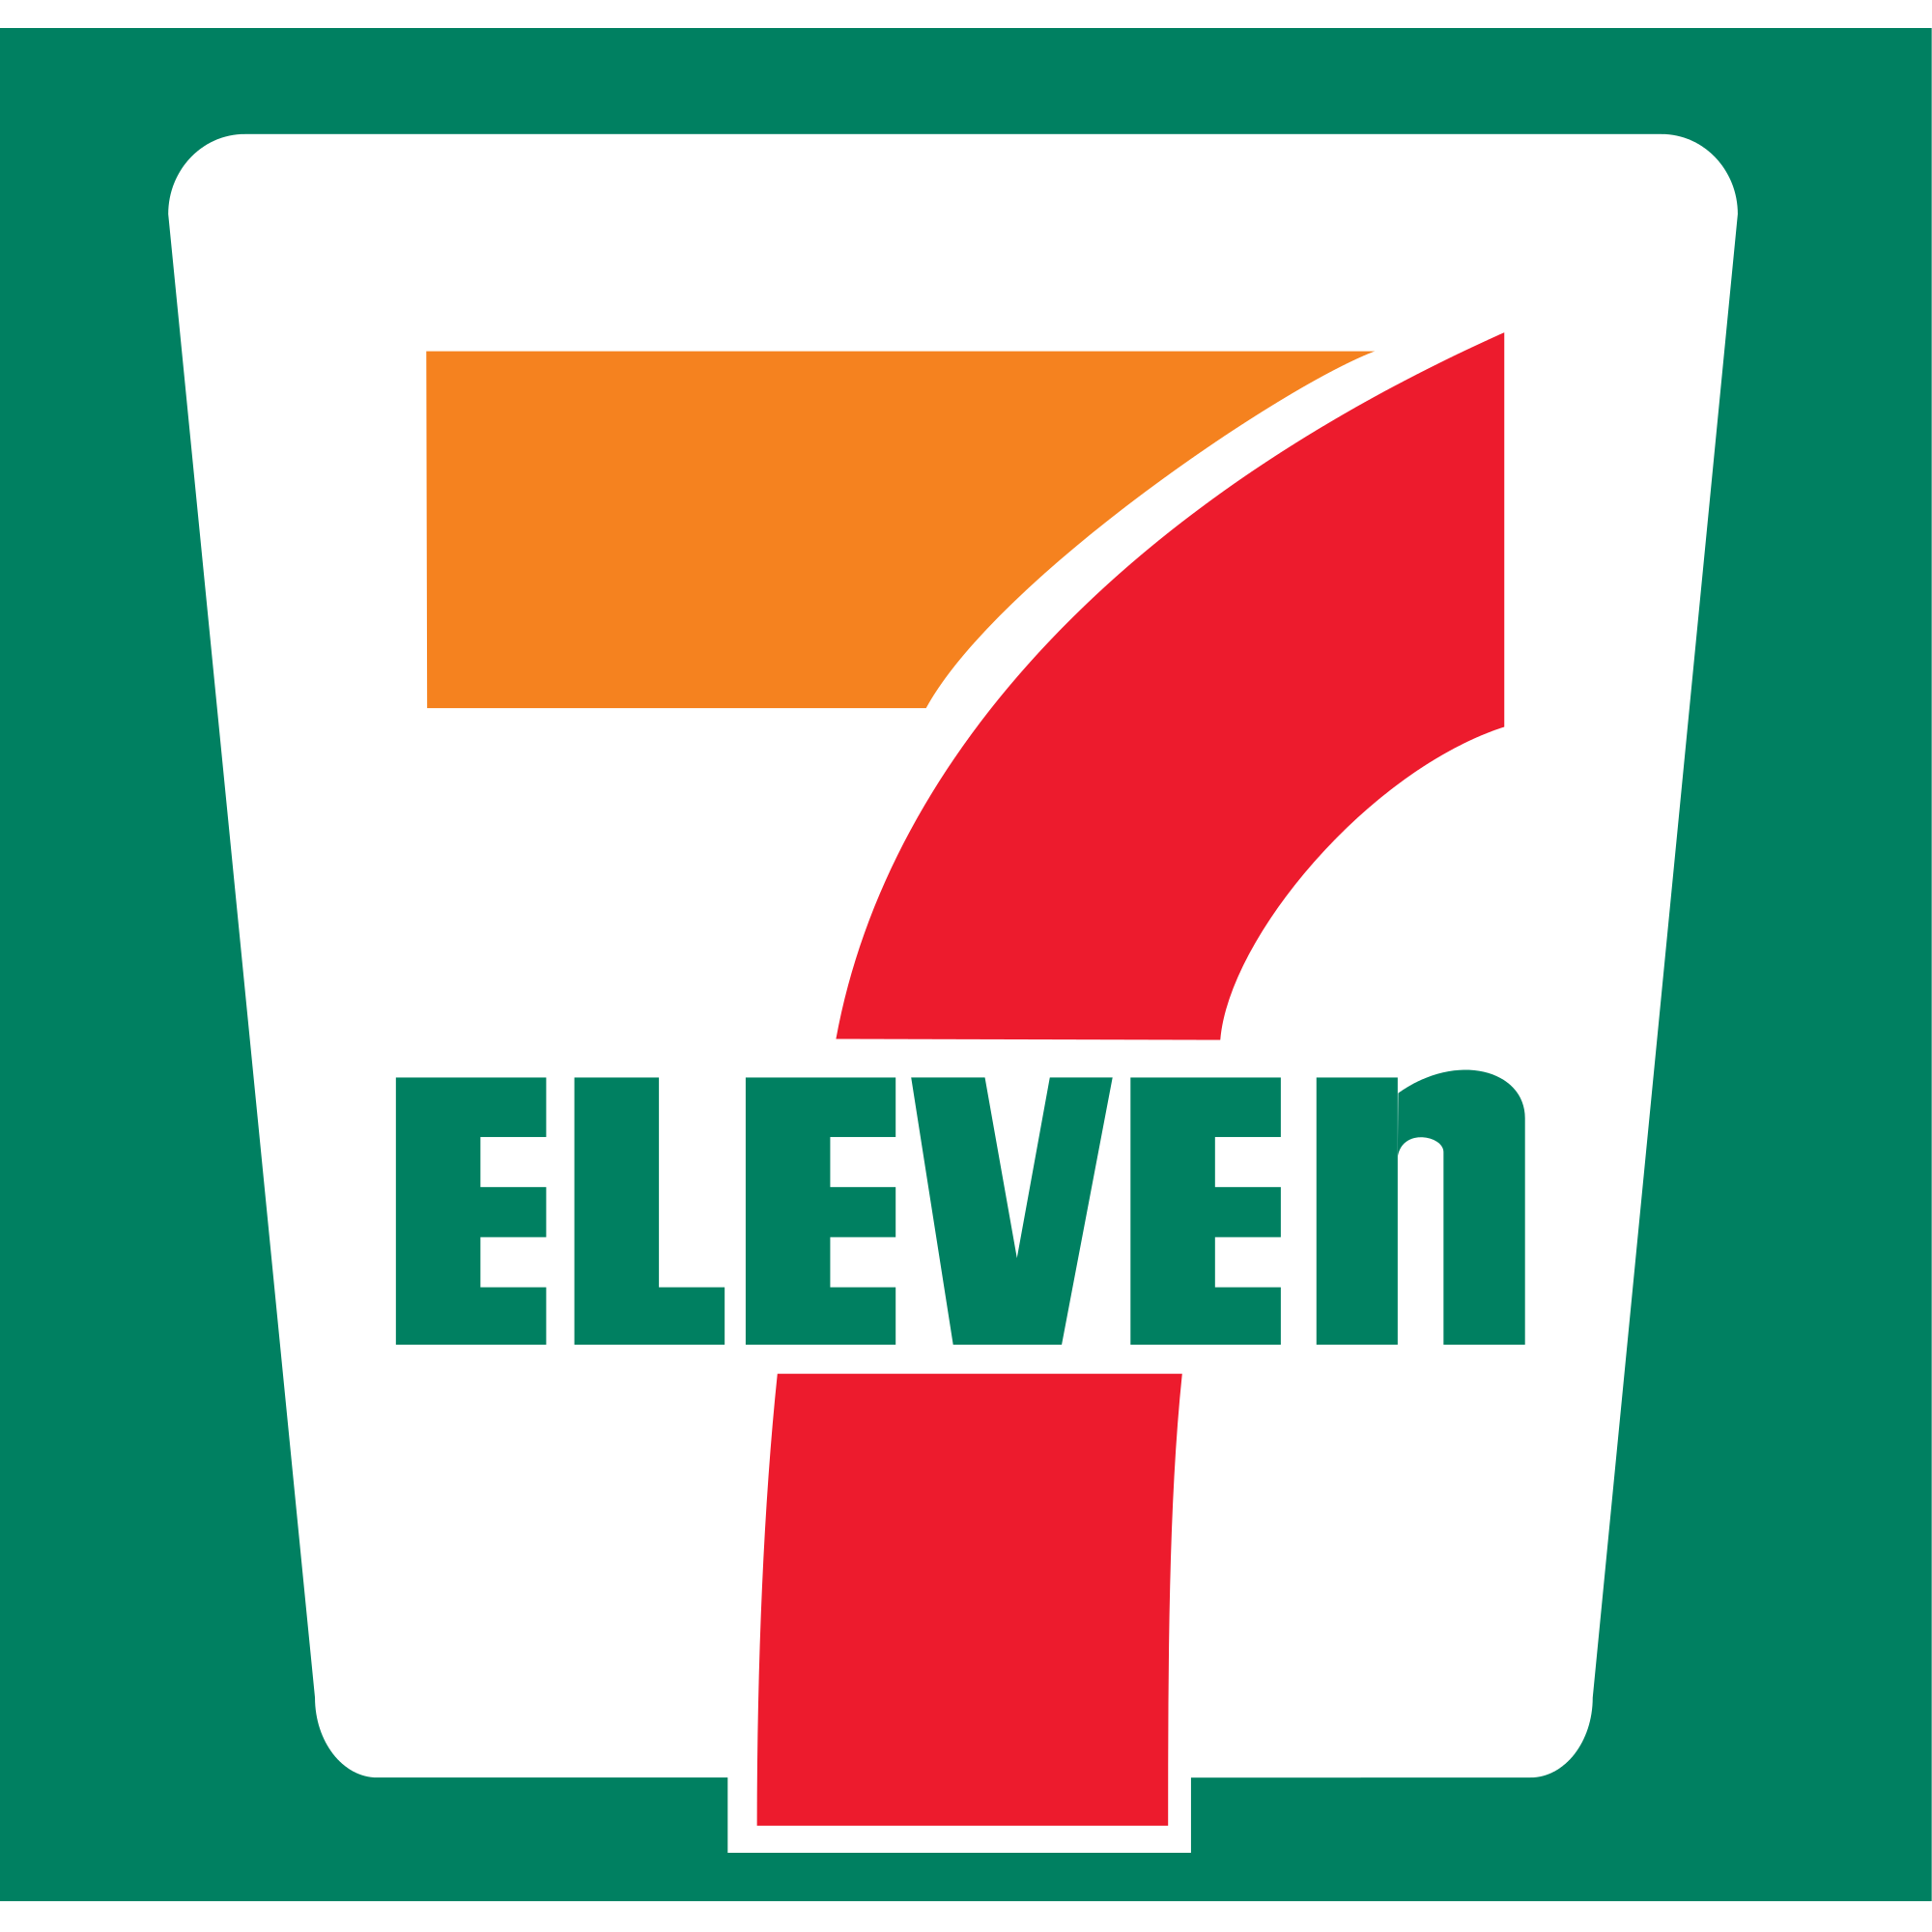 7-Eleven - Daytona Beach, FL 32118 - (386)253-6813 | ShowMeLocal.com